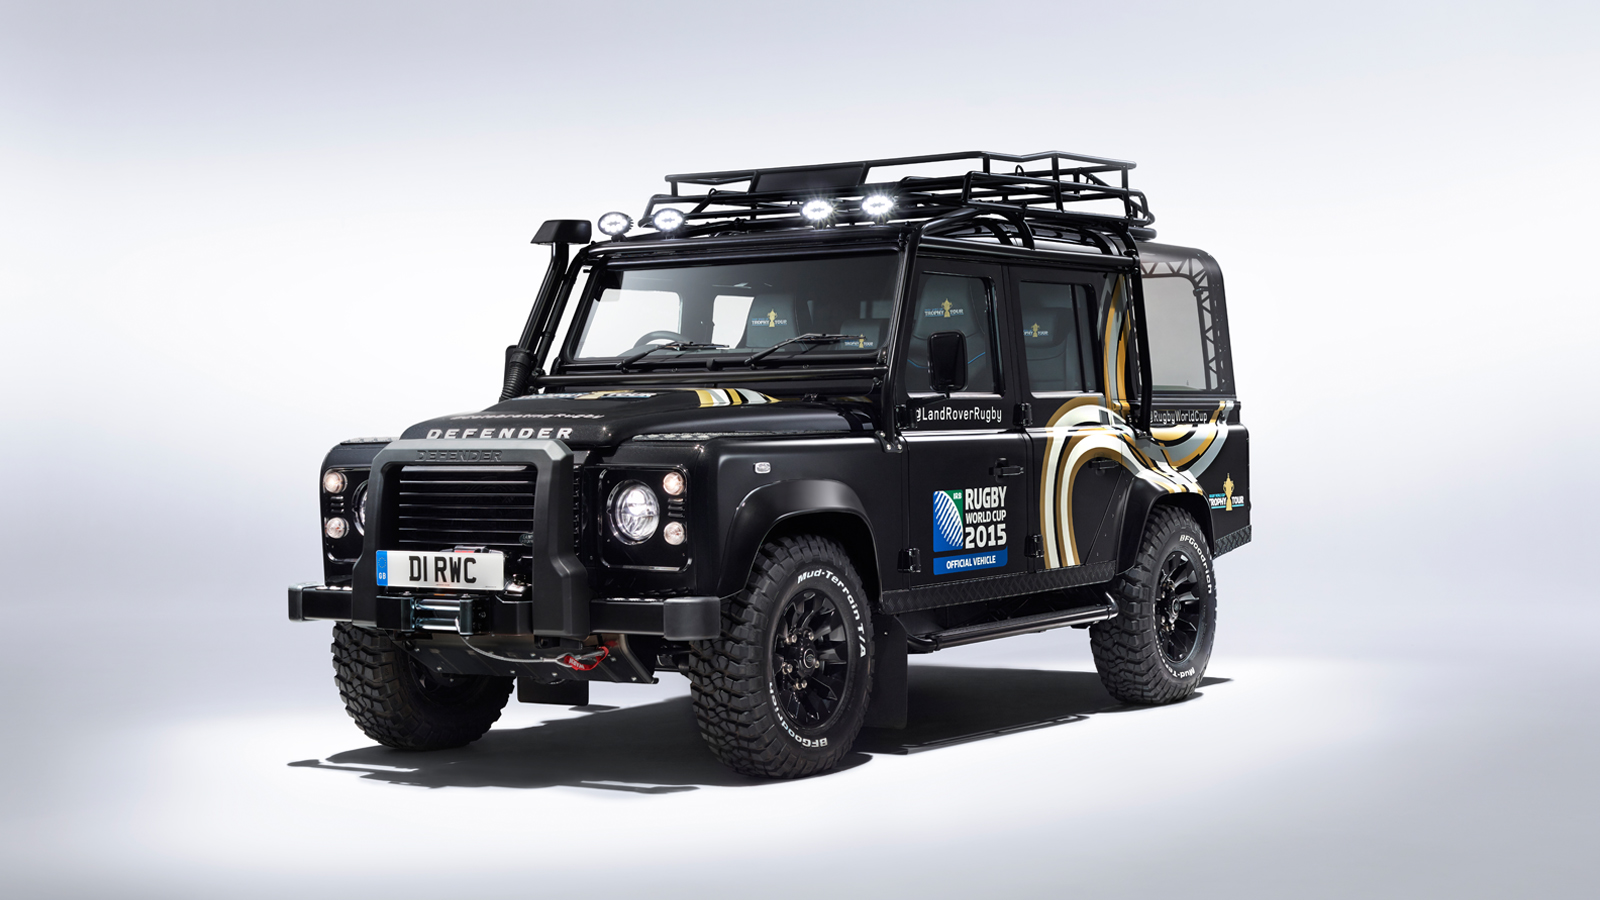 land rover defender svo revealed for rugby world cup gtspirit. Black Bedroom Furniture Sets. Home Design Ideas